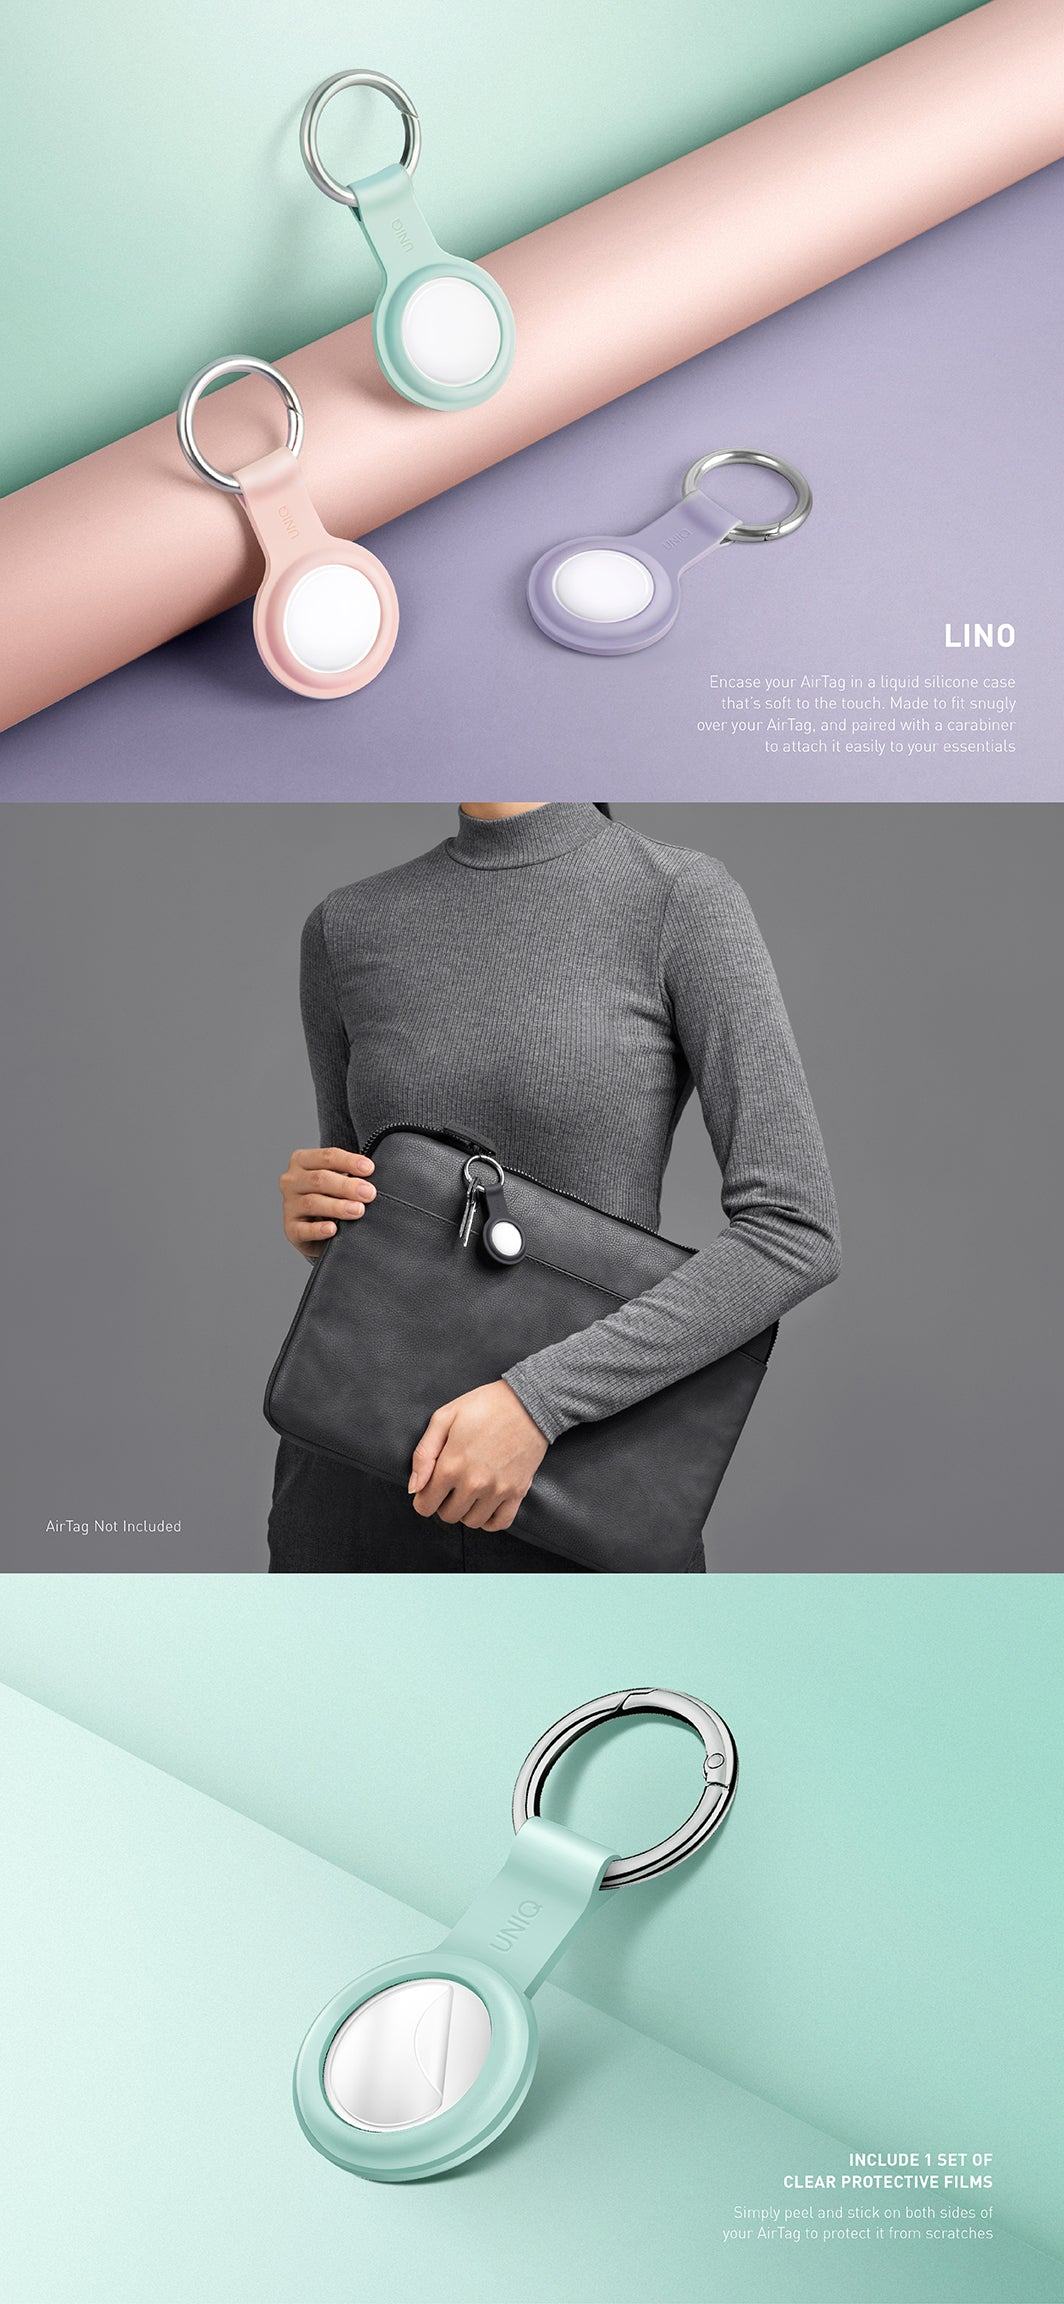 UNIQ Liquid Silicone Keyring case for AirTag | Available as a 4-Pack or Pack of 4